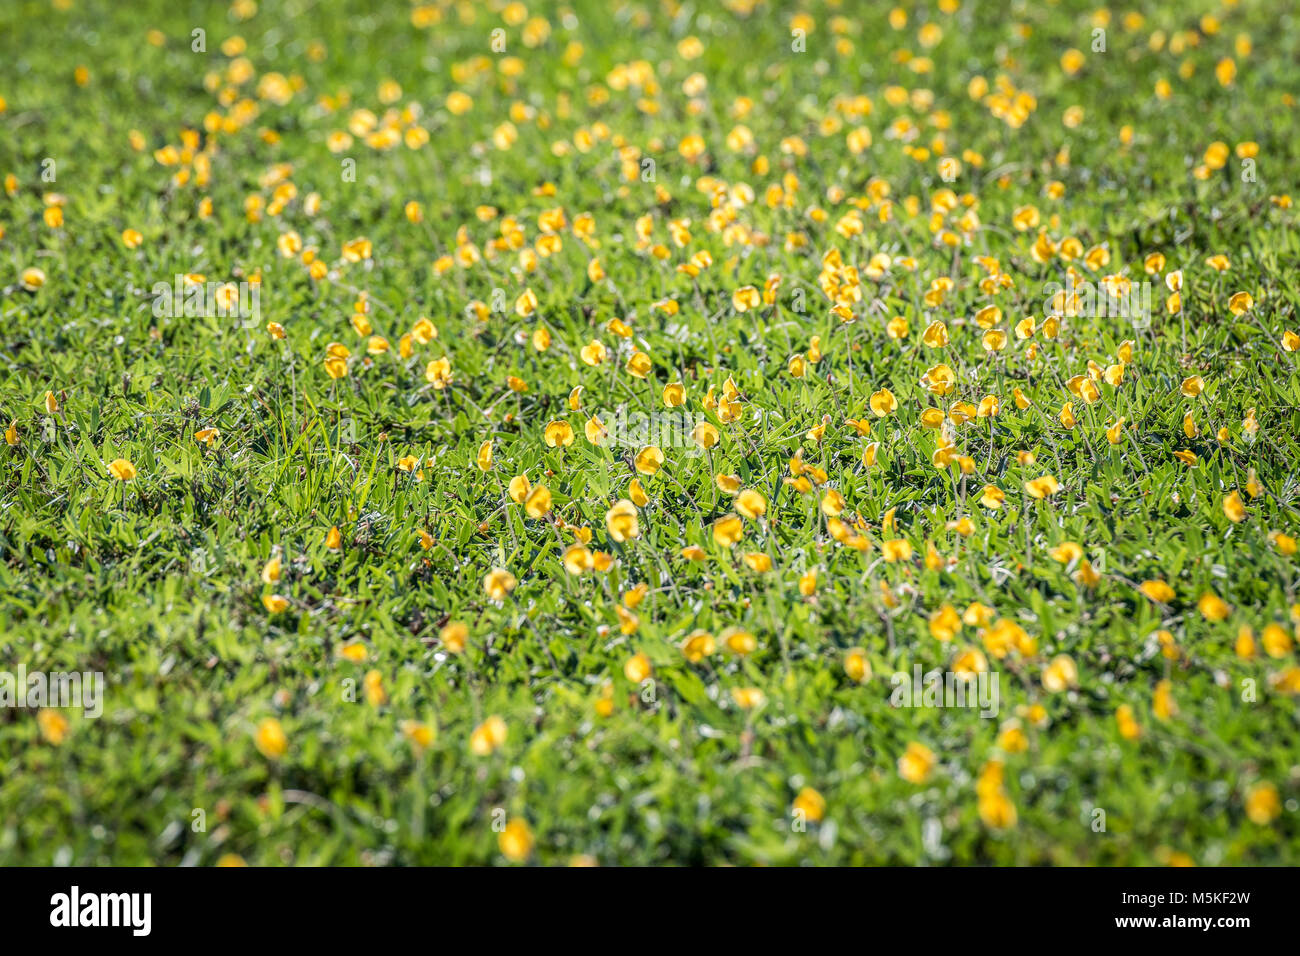 Field Of Yellow Flowers From Perennial Peanut Plant Being Used As A